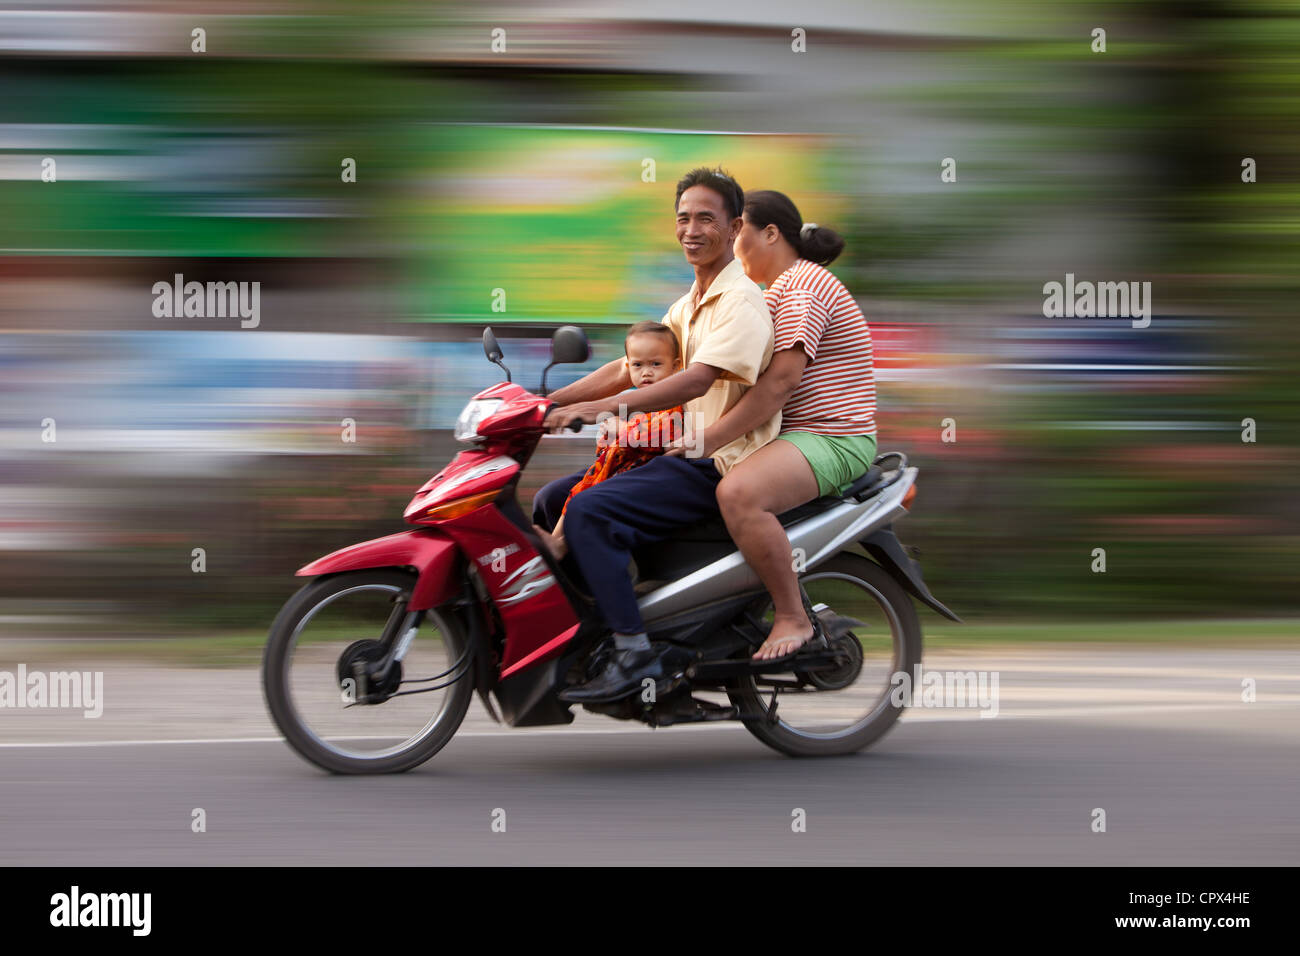 a family on a motorcycle, Negros, The Visayas, Philippines - Stock Image